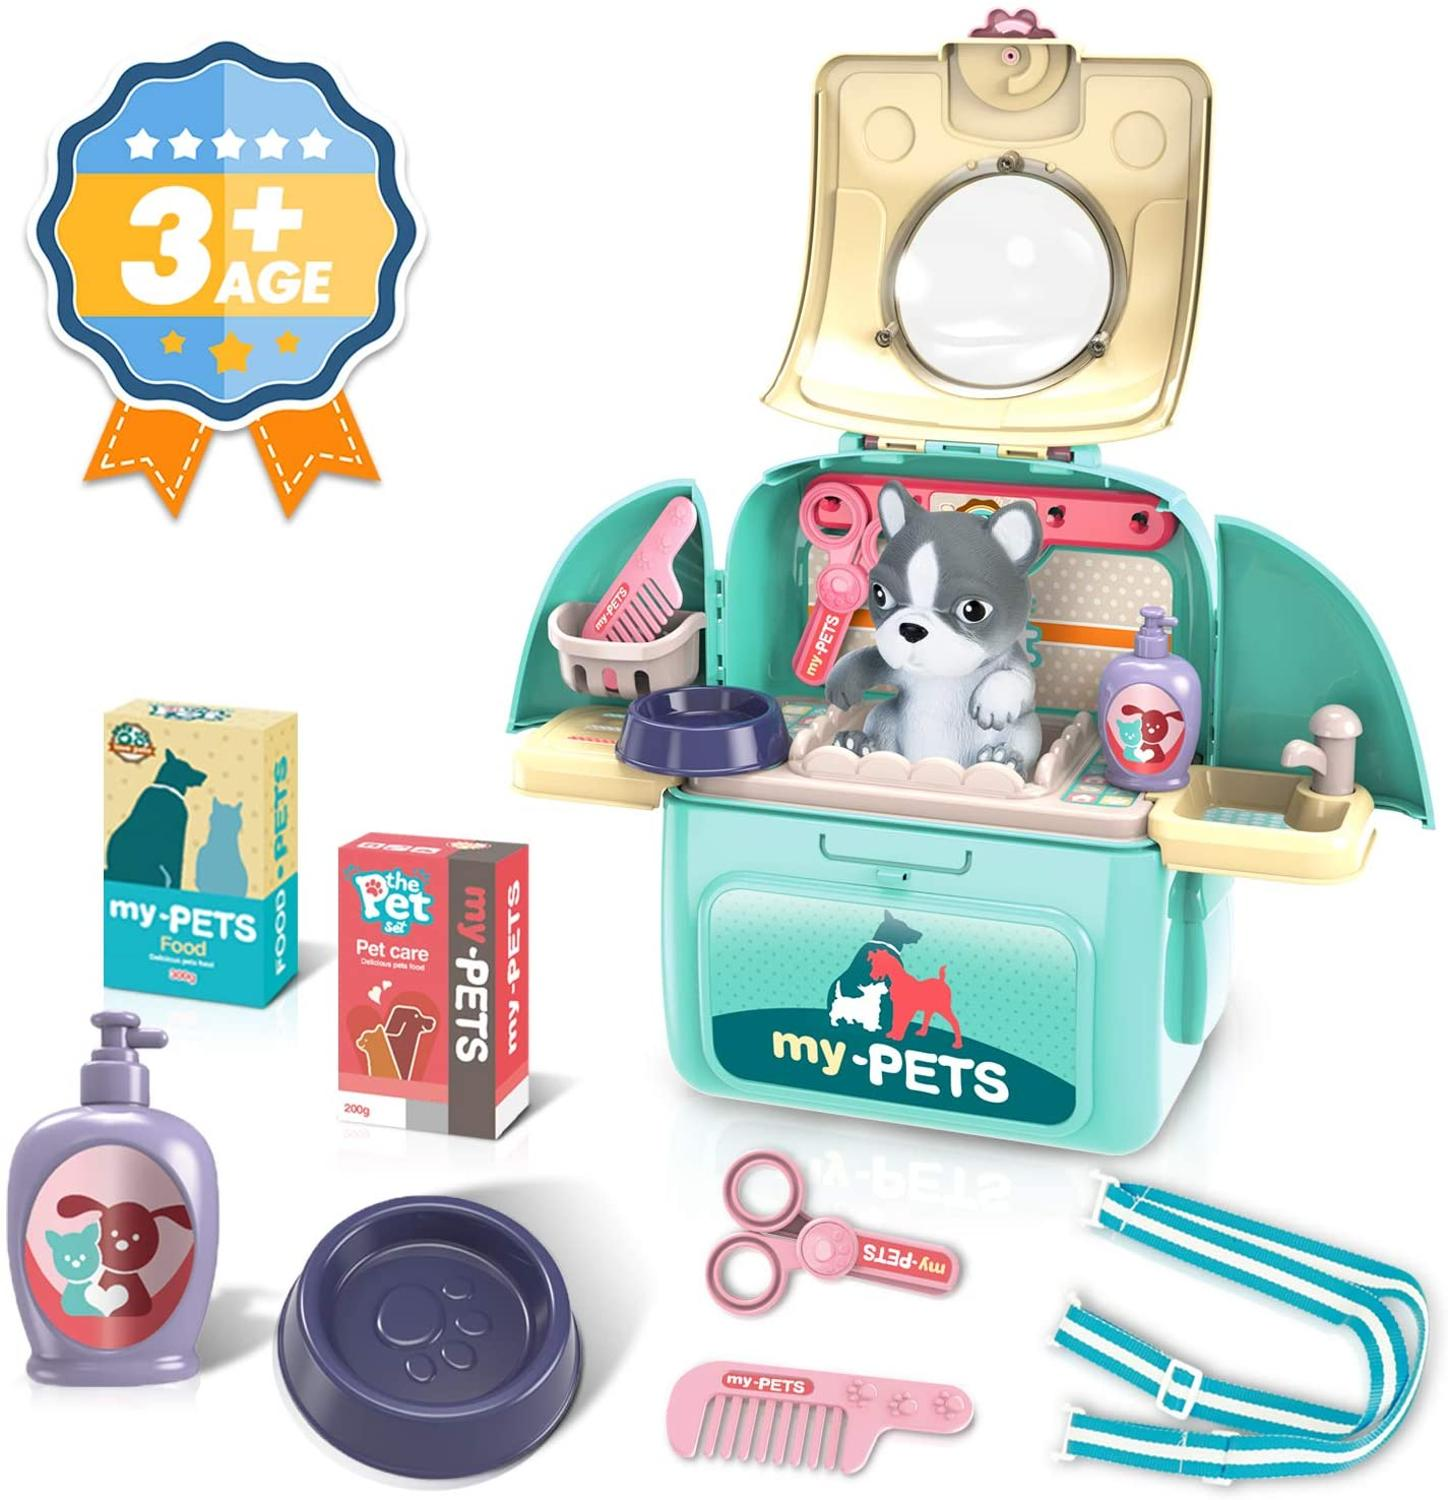 Pet Care Playset Set, Pet Veterinarian Playset with Backpack Pretend Play Toys for Kids Doctor Pretend Play Vet Kit School Toys